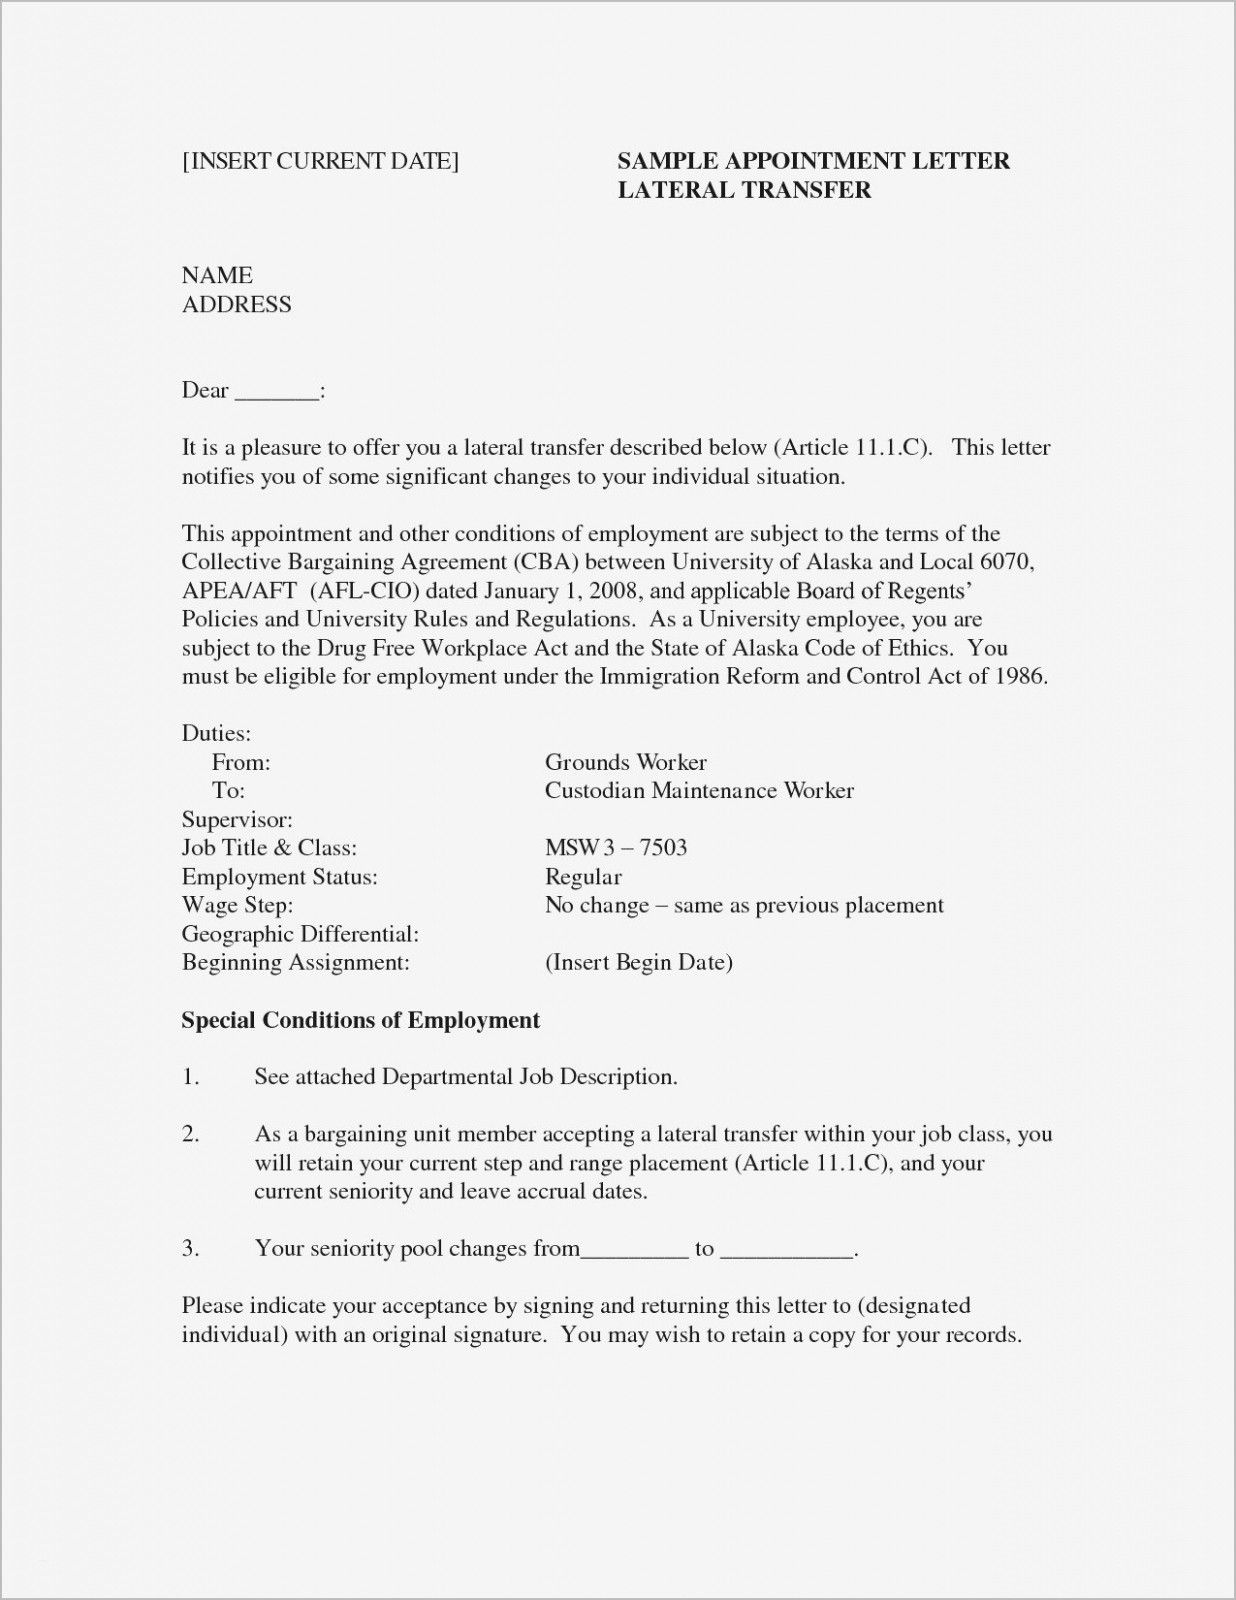 Resume Template for 16 Year Old - Functional Resume Template Beautiful Executive assistant Functional